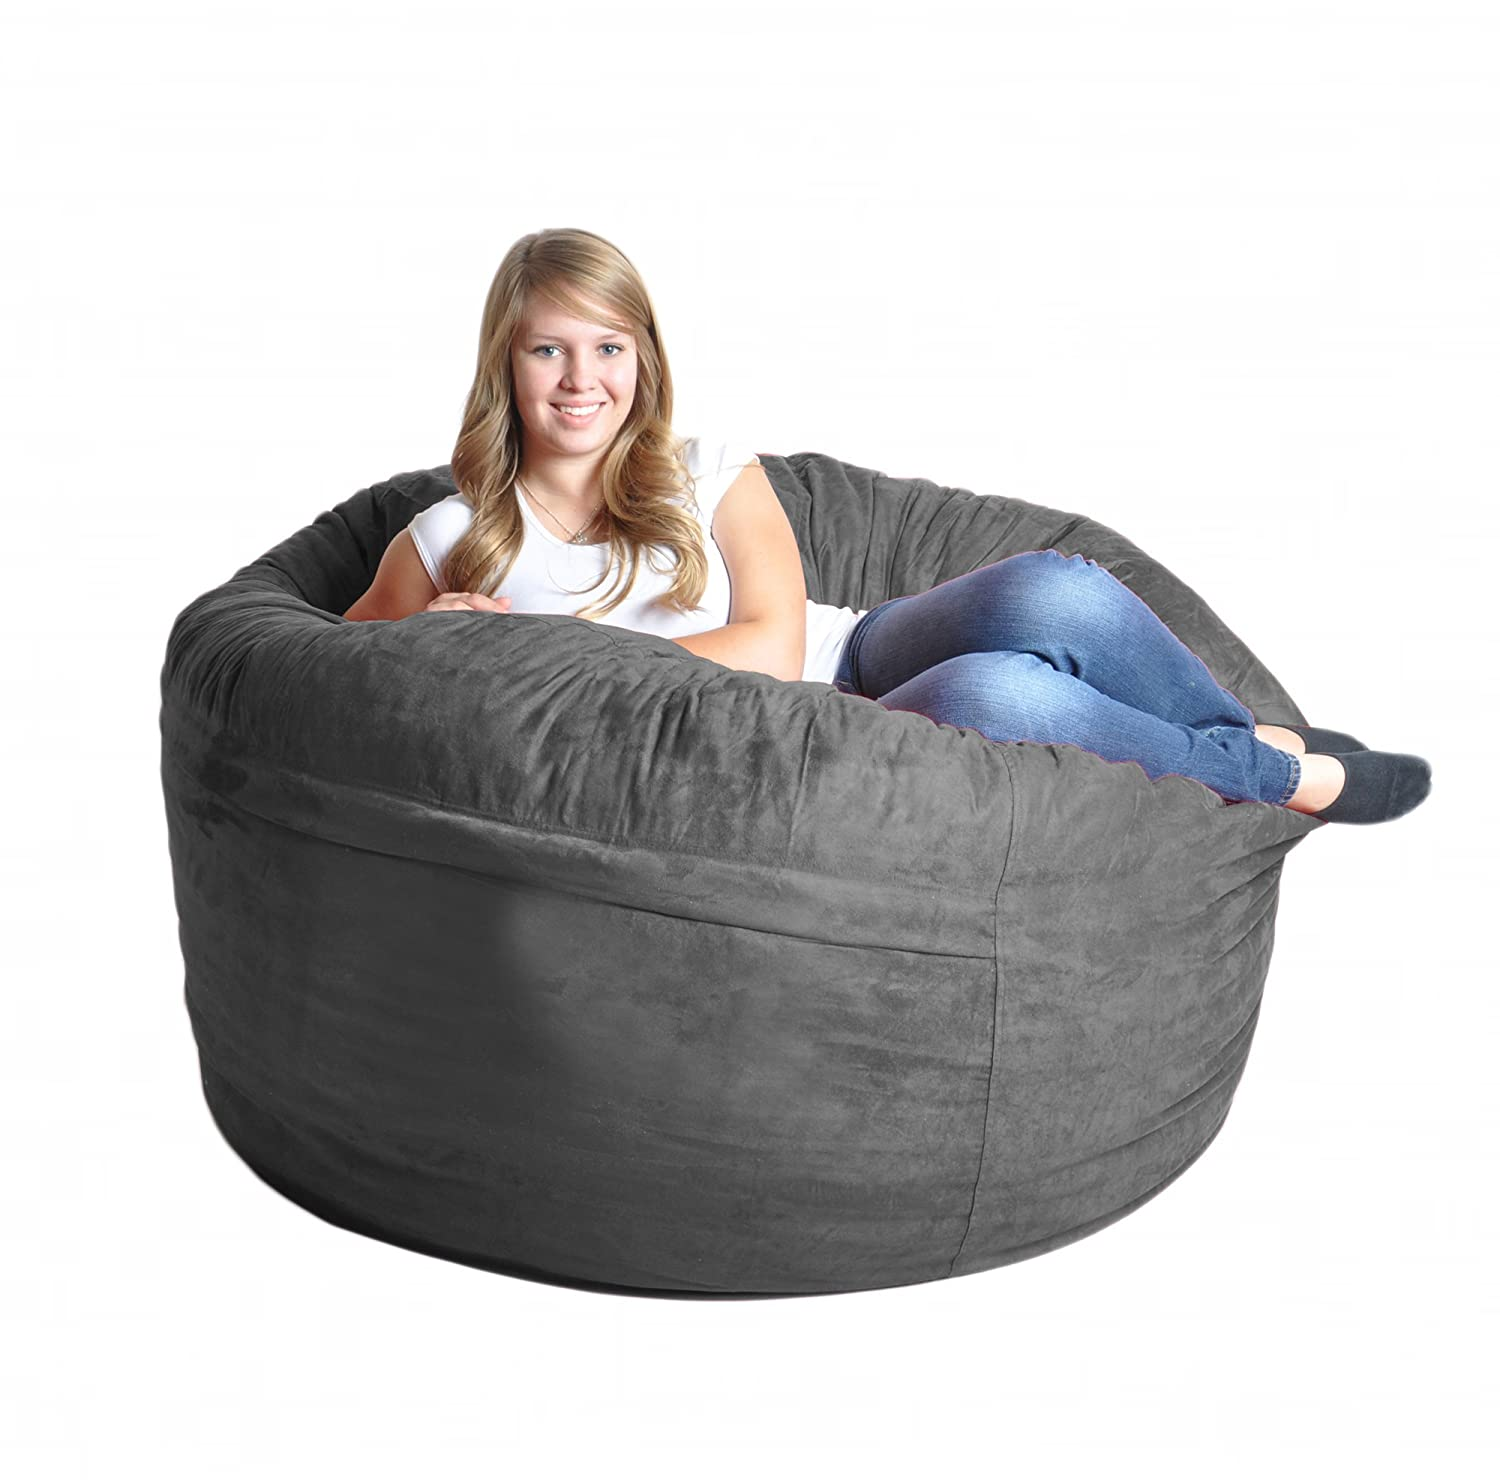 Amazon SLACKER sack 5 Feet Foam Microsuede Beanbag Chair